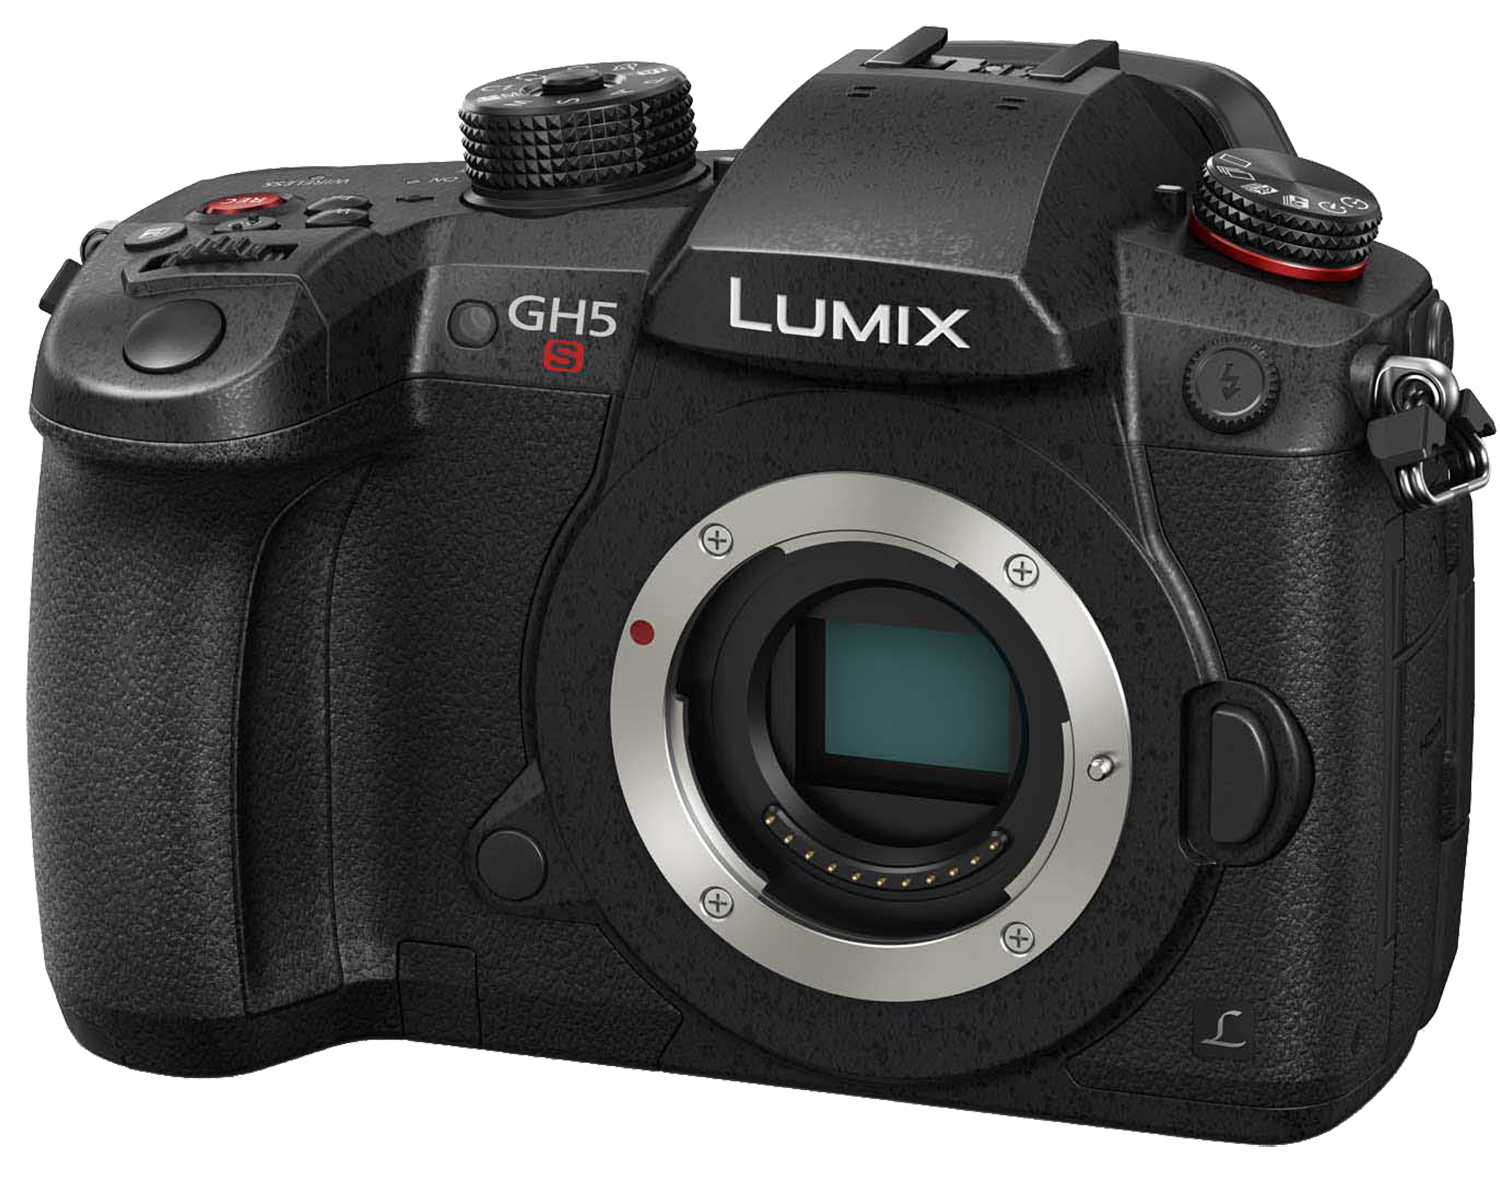 Now in stock! The Panasonic GH5S